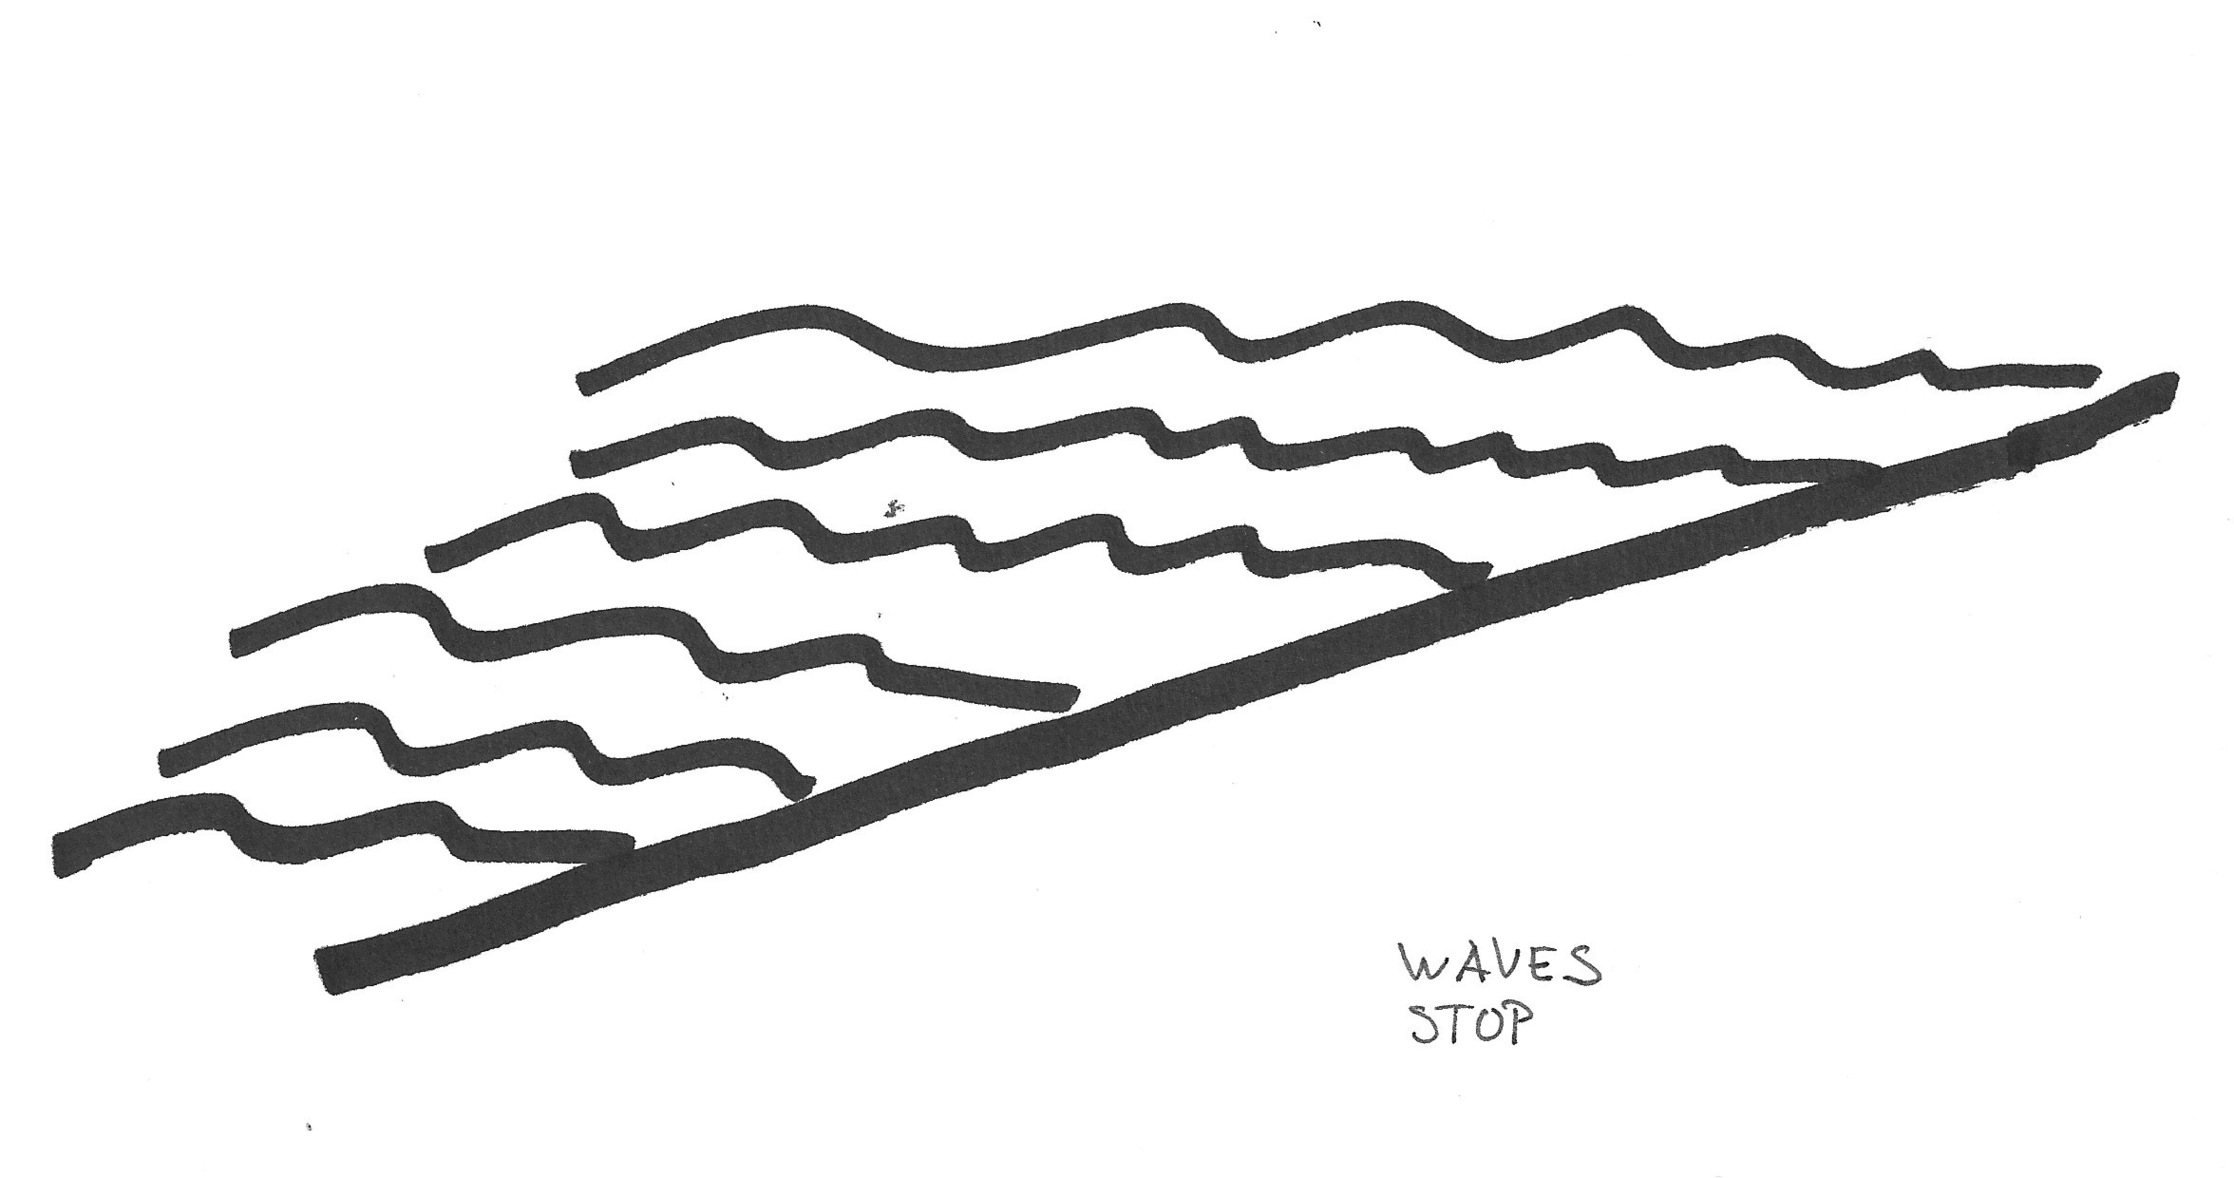 Wave Line Drawing.